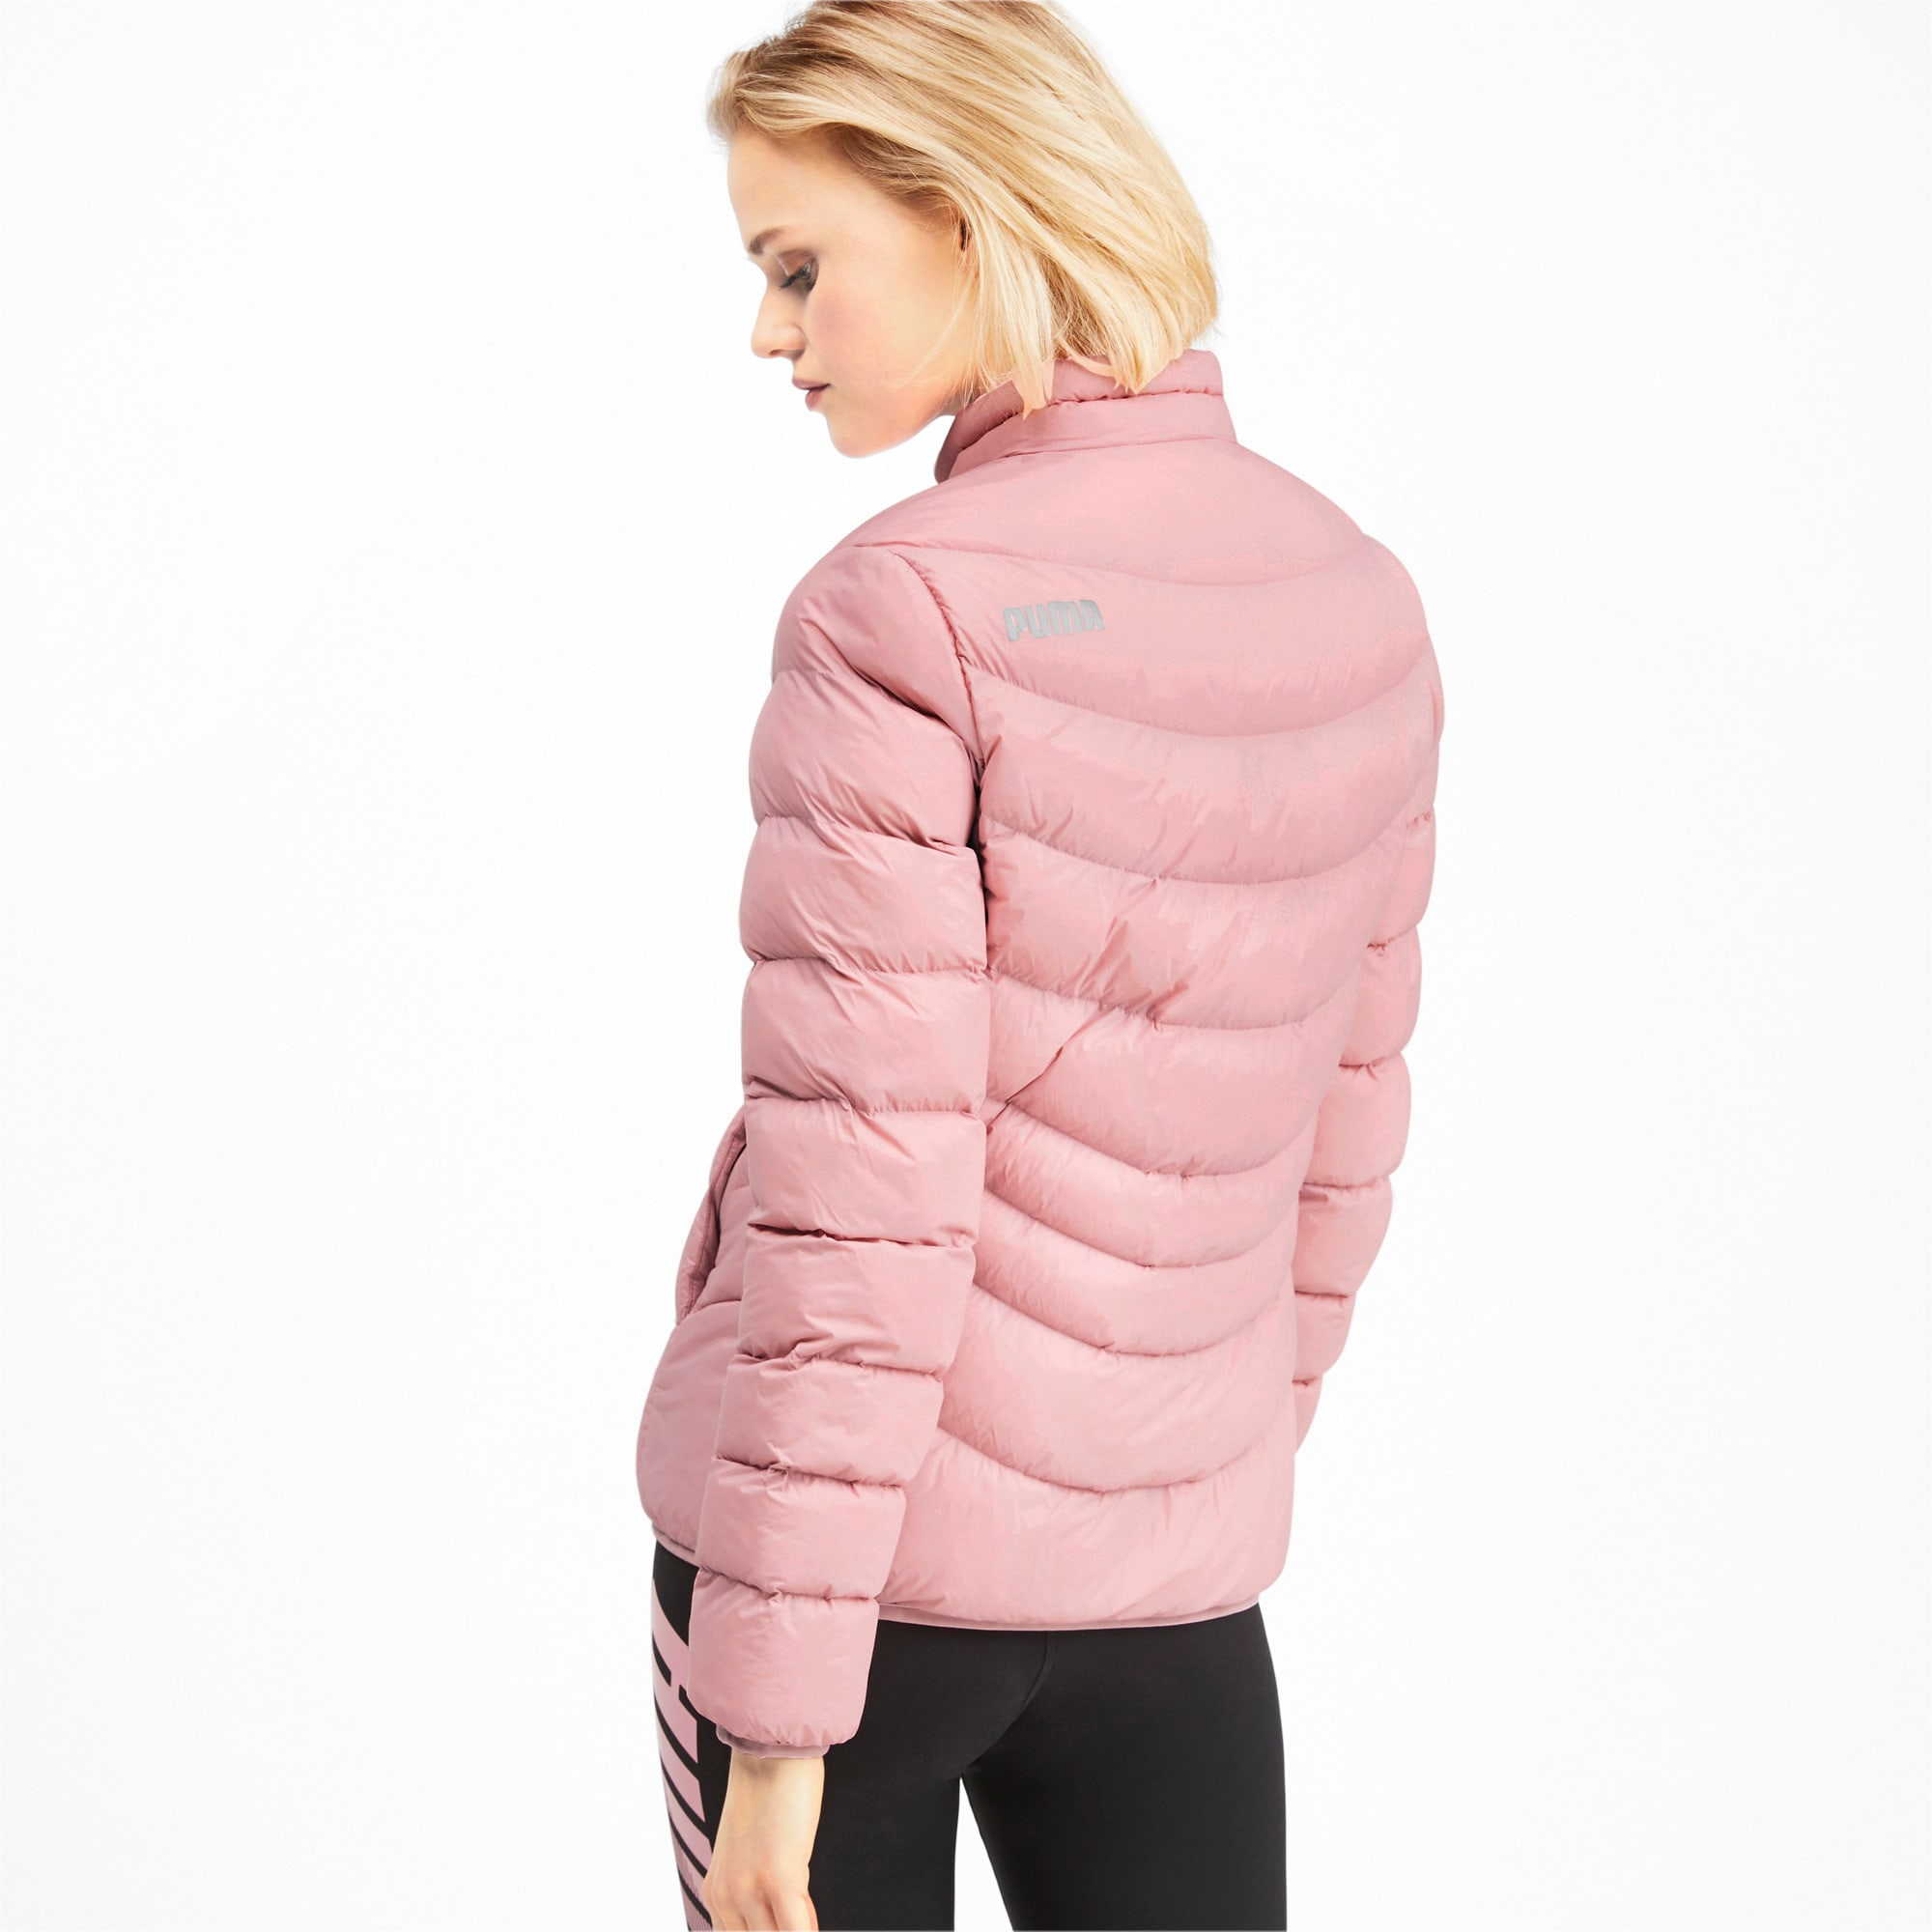 Thumbnail 2 of Ultralight warmCELL Women's Jacket, Bridal Rose, medium